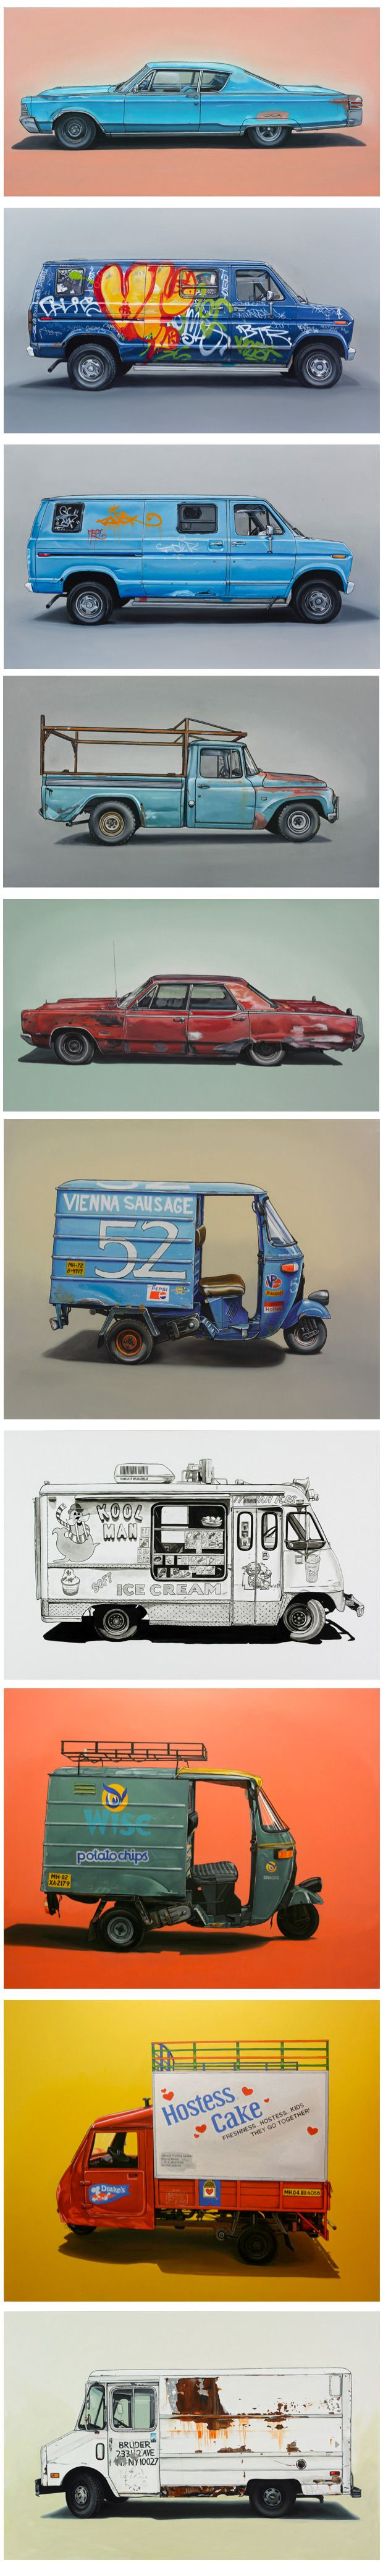 Kevin Cyr :: Vehicles